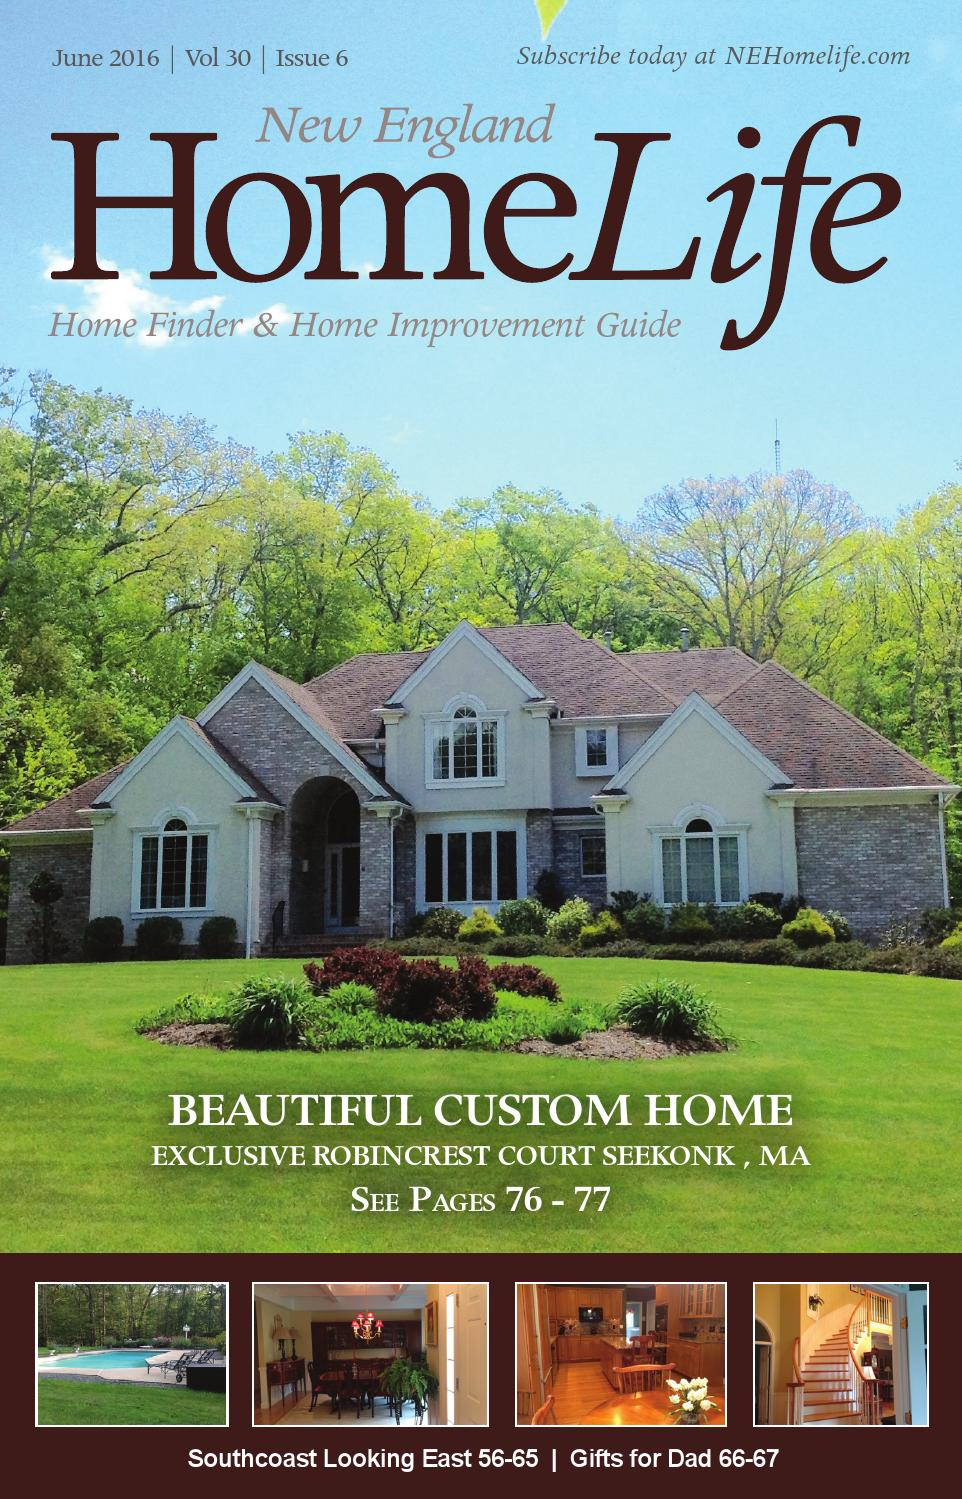 Limas Garage East Taunton Ma June 2016 By New England Homelife Issuu